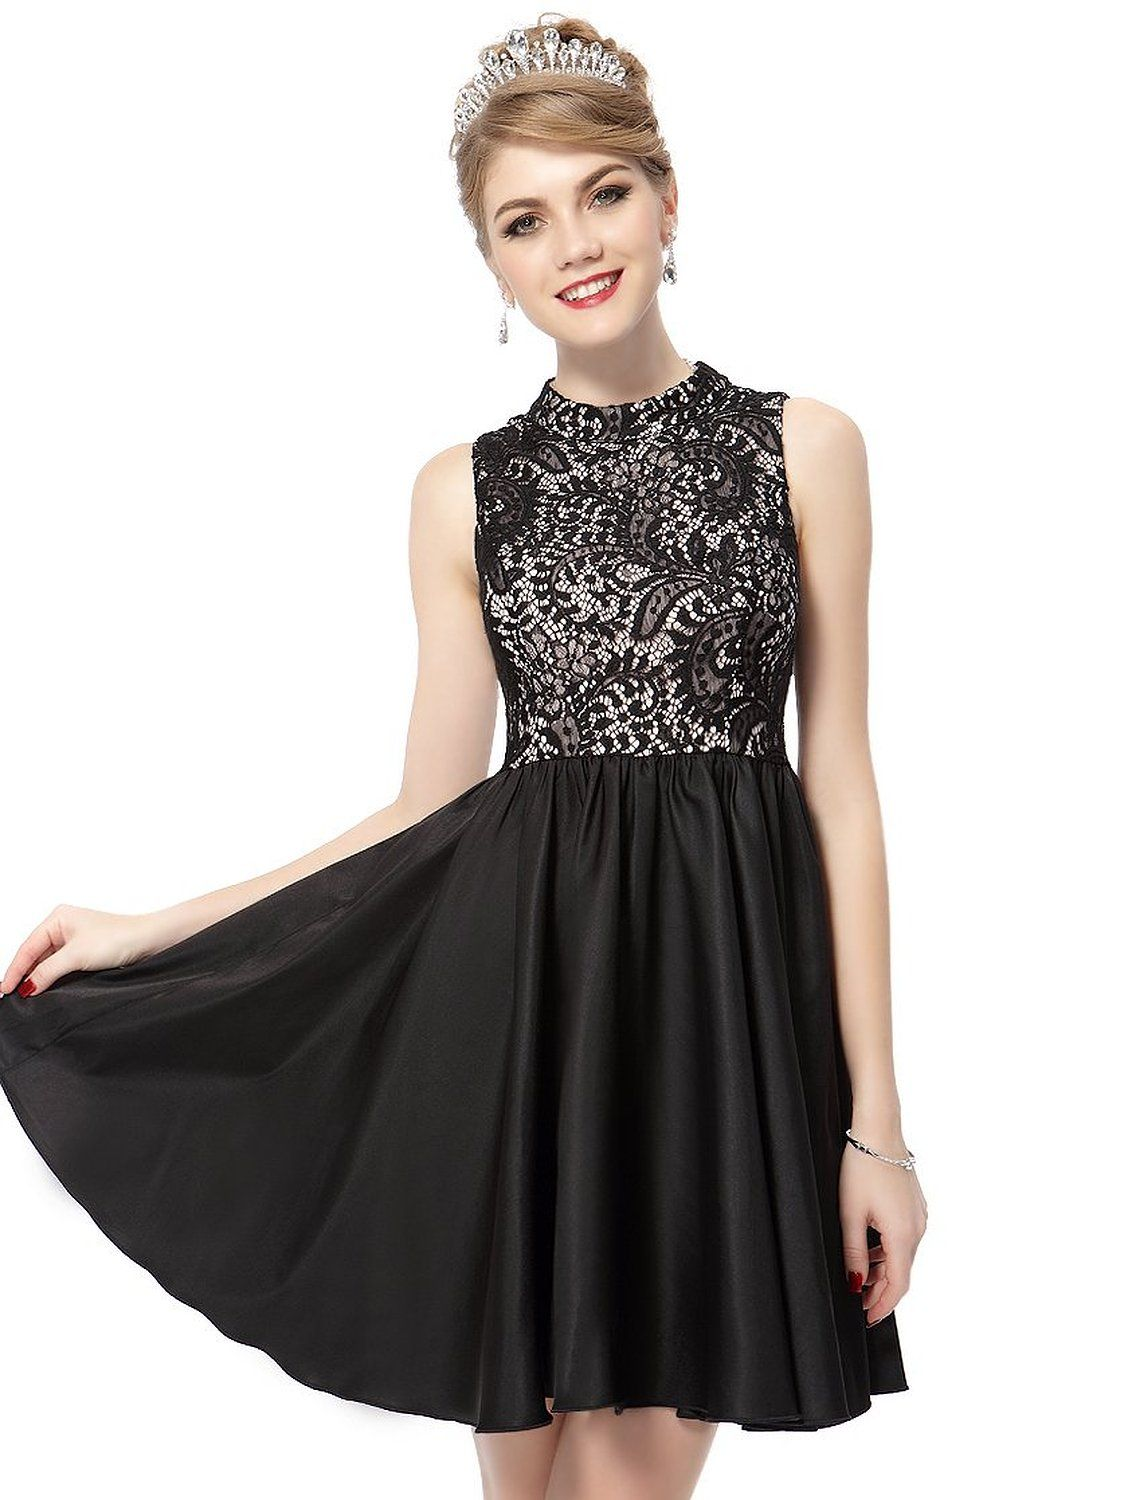 dresses-for-juniors-formal-cute-semi-formal-dresses-for-juniors ...